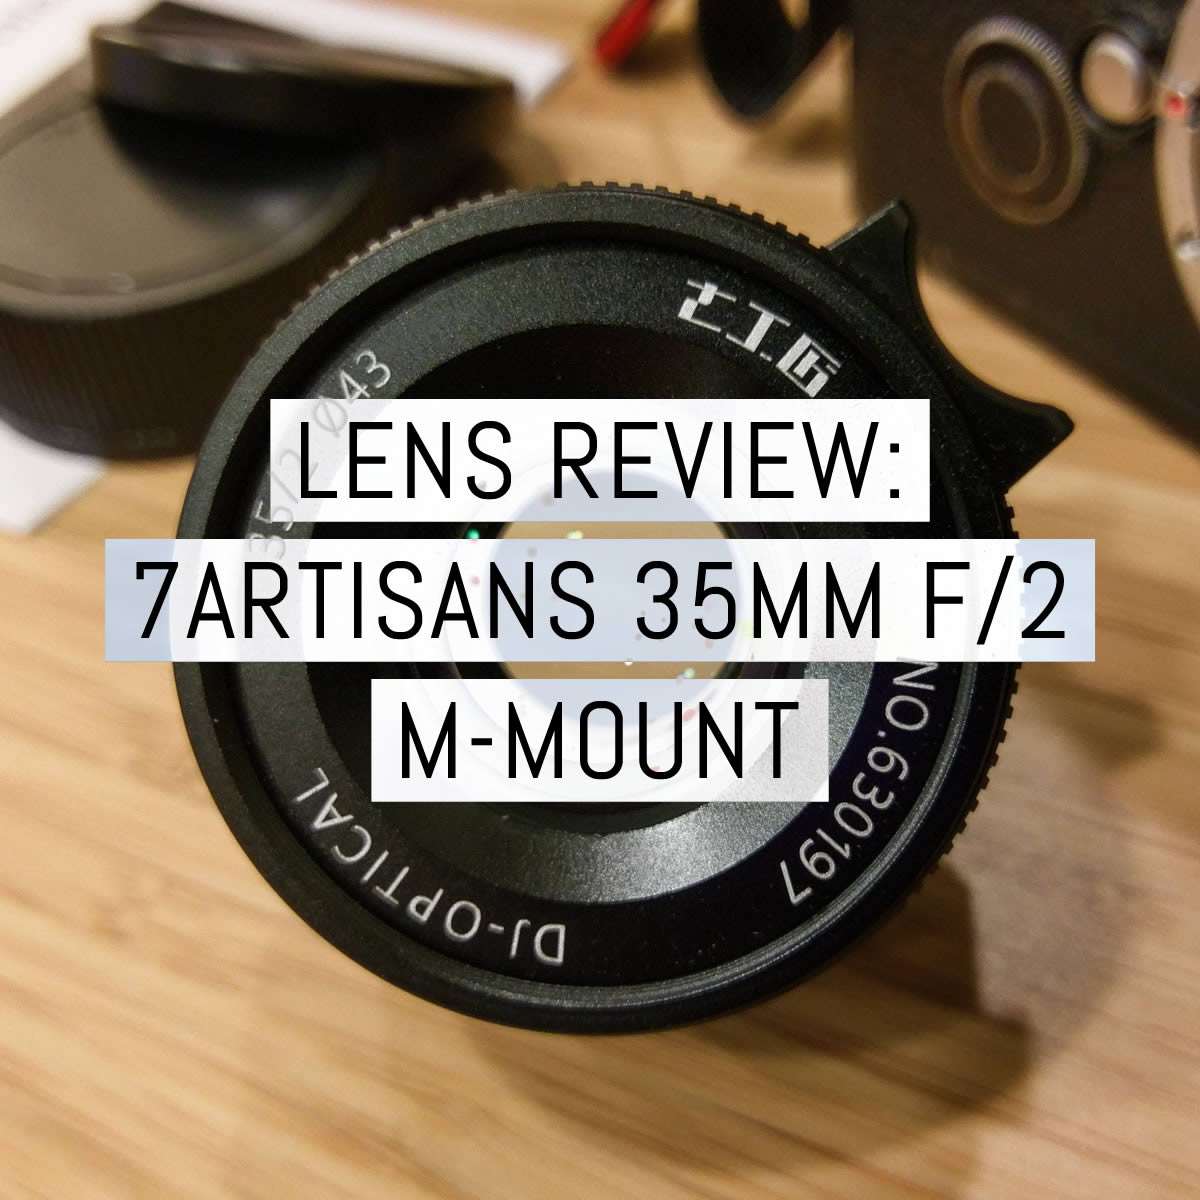 Lens review: the 7artisans 35mm f/2 Leica M-mount lens - first production batch exclusive